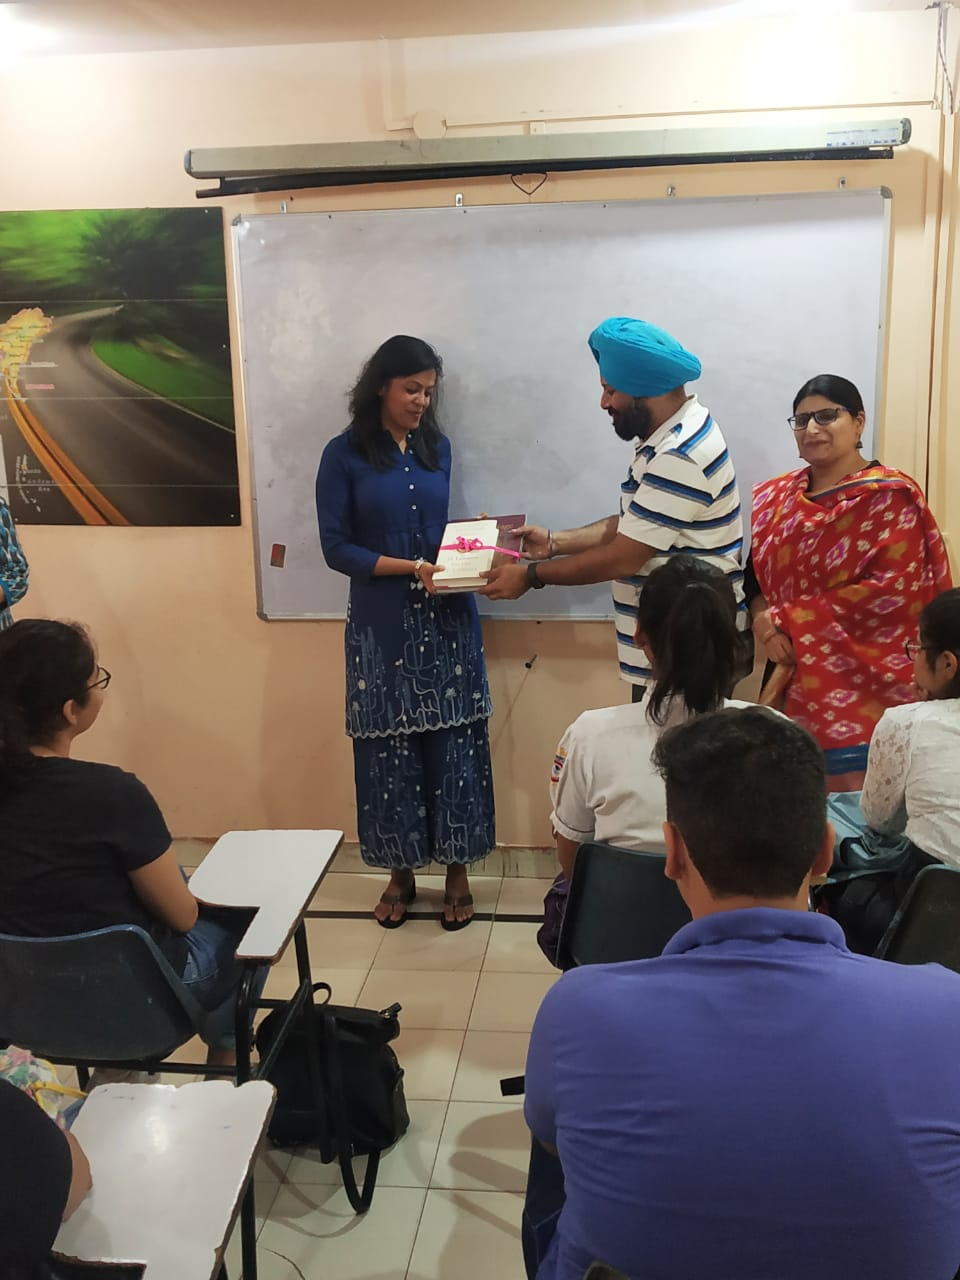 //www.careerlauncher.comOn 24 August 2019, IAS officer Mrs. Ashika Jian, currently serving as Joint Commissionerin Jalandhar MC, gave an inspiring lecture to Law aspirants at CL Jalandhar. She is an alumnus of NLU Delhi.